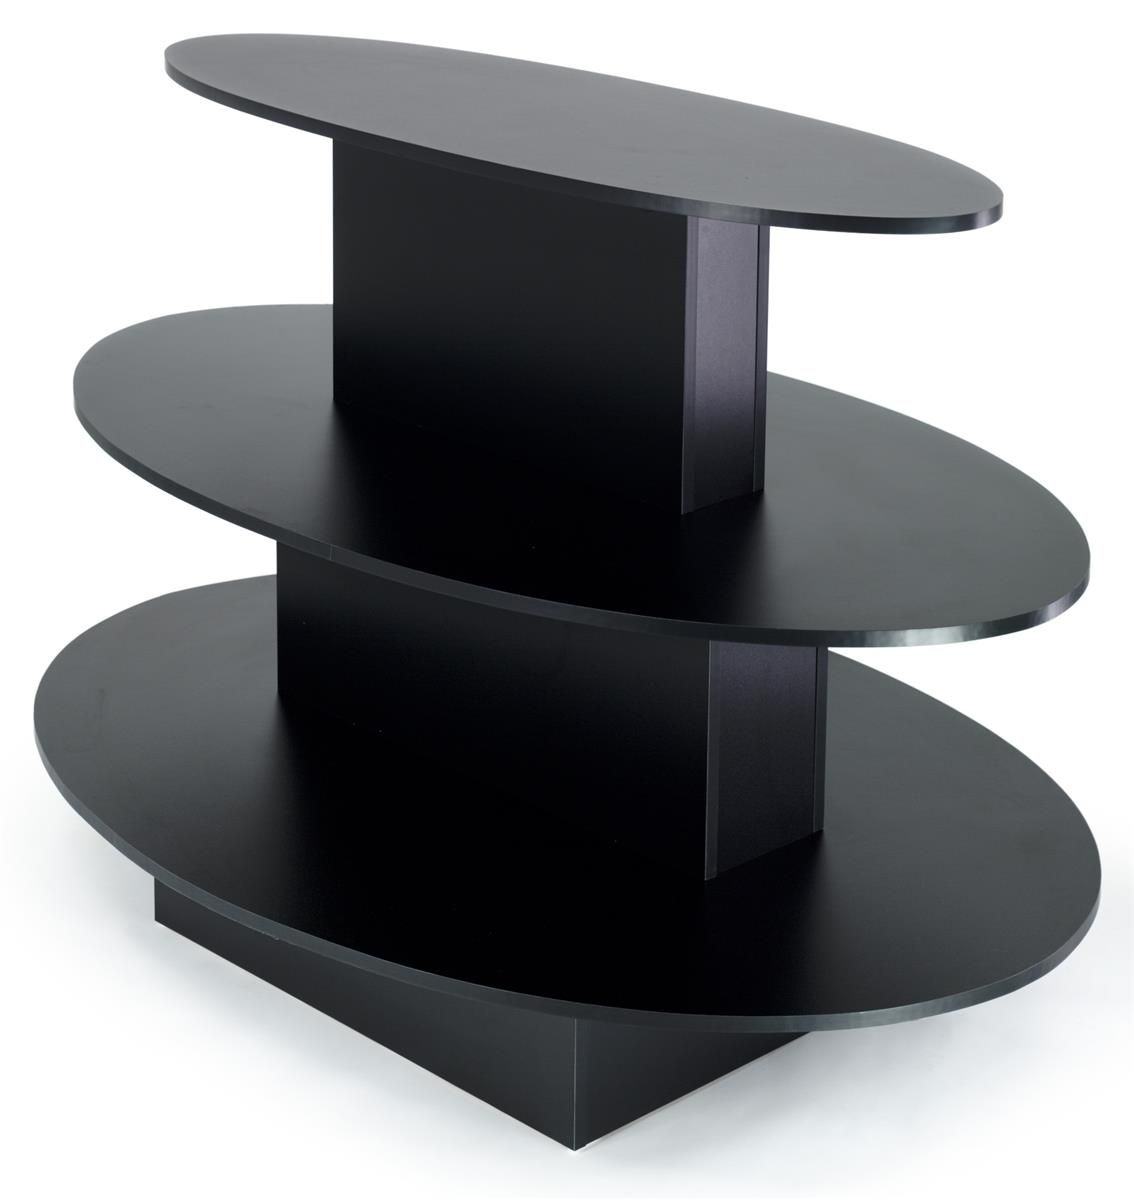 3-Tier Melamine Oval Table - Las Vegas Mannequins